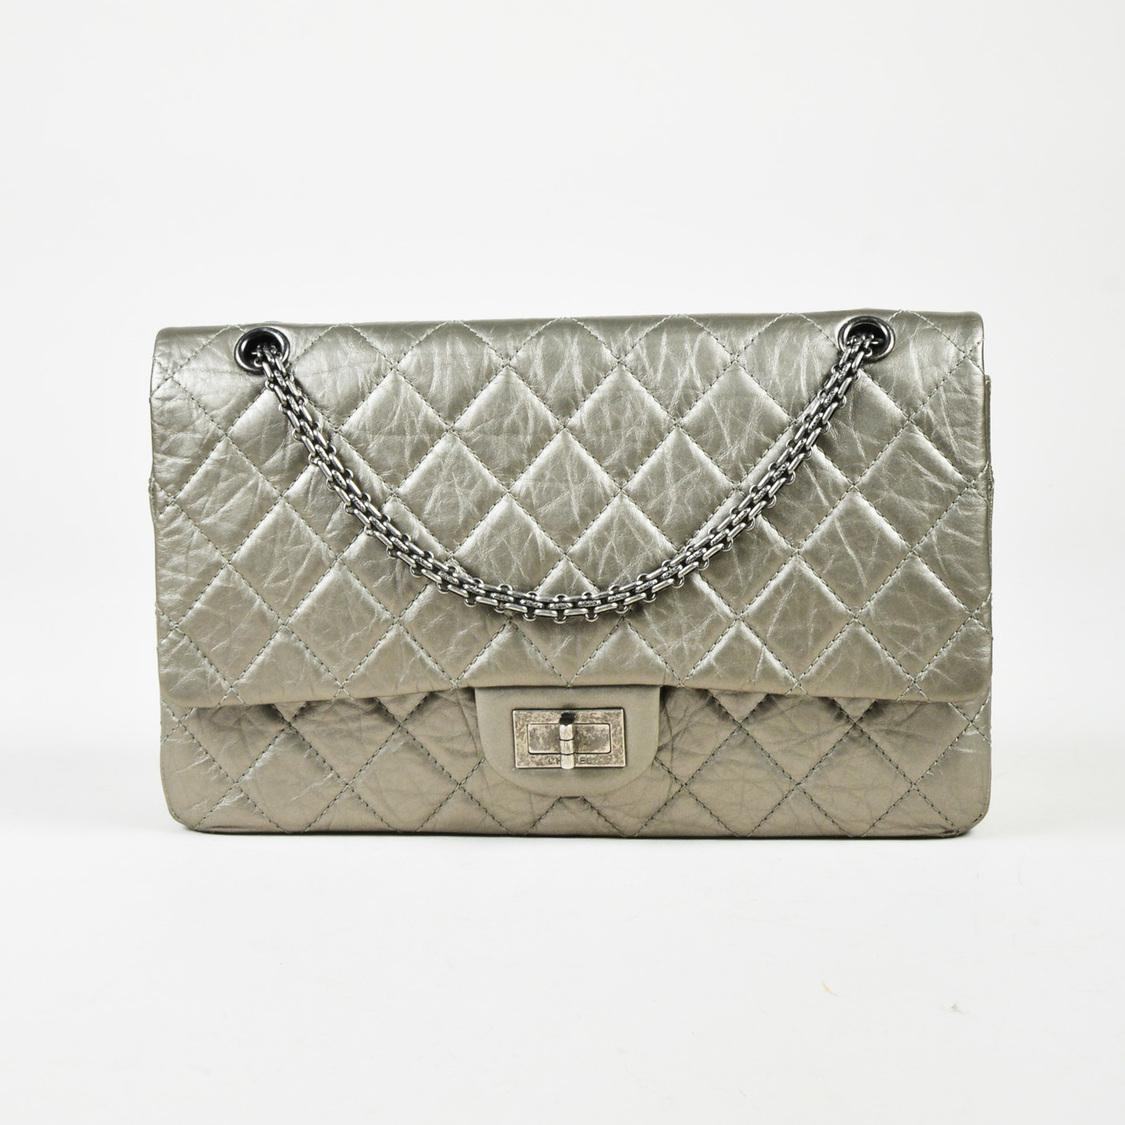 9f3856da22bb Chanel Gray Quilted Distressed Calfskin